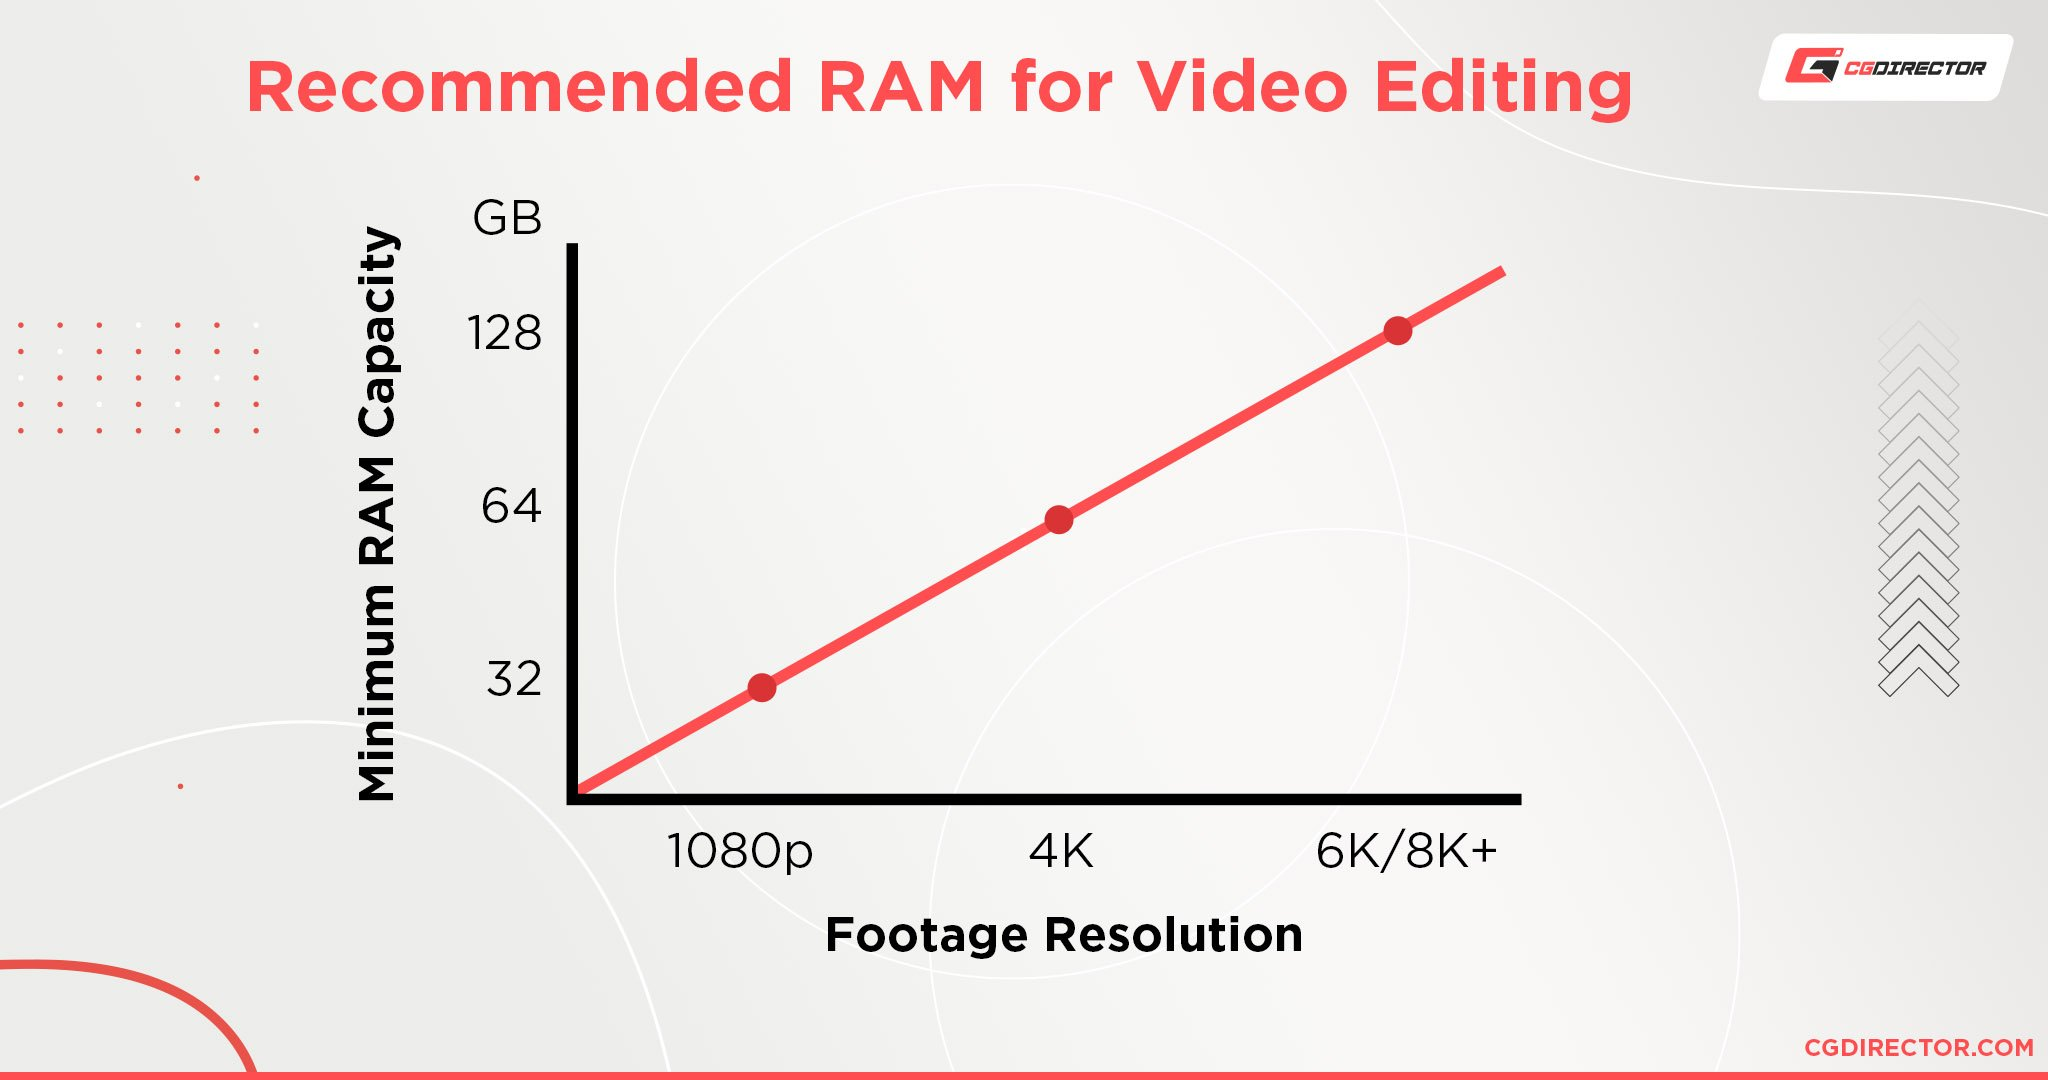 Recommended RAM for Video Editing